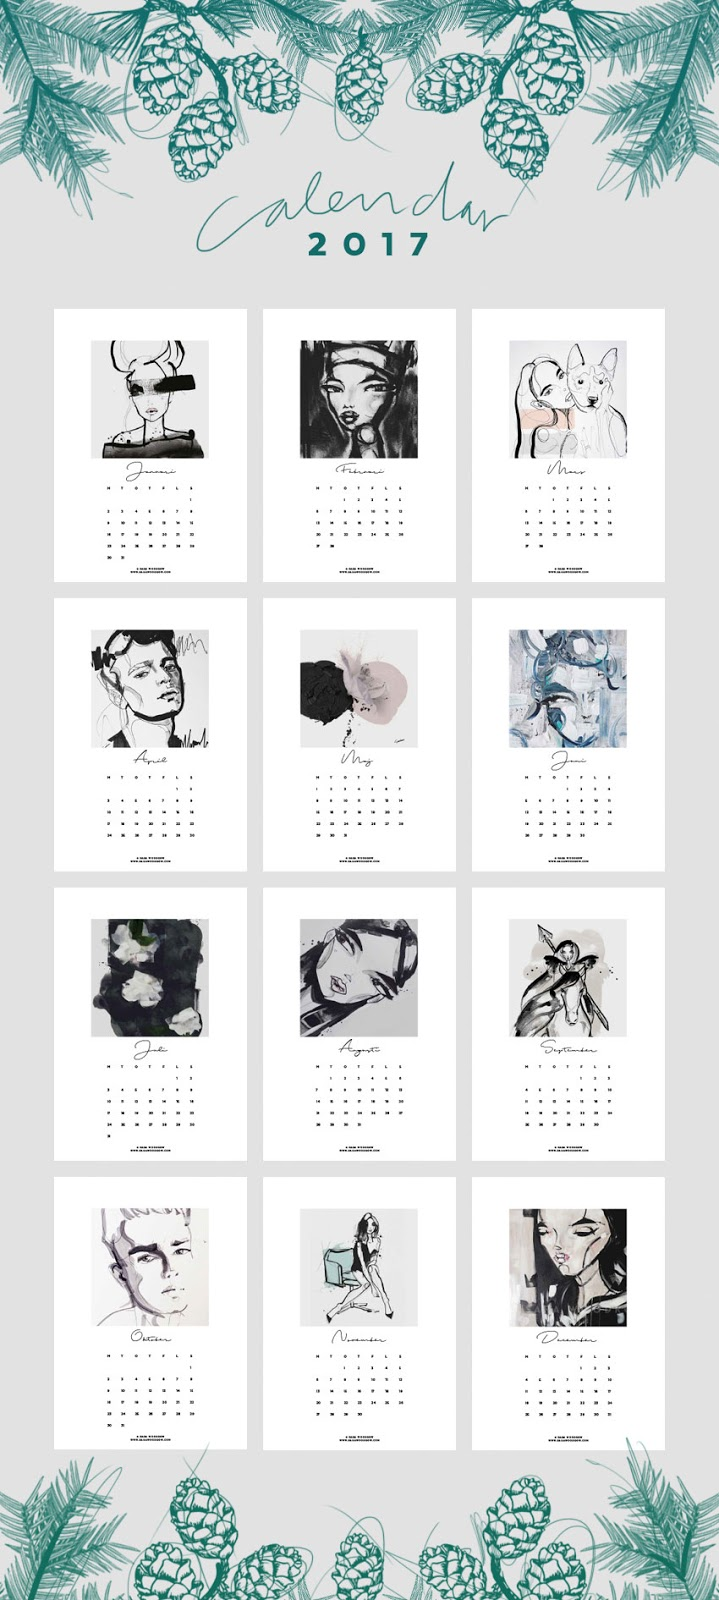 download, free, calendar, calendario 2017, sara woodrow, artsy